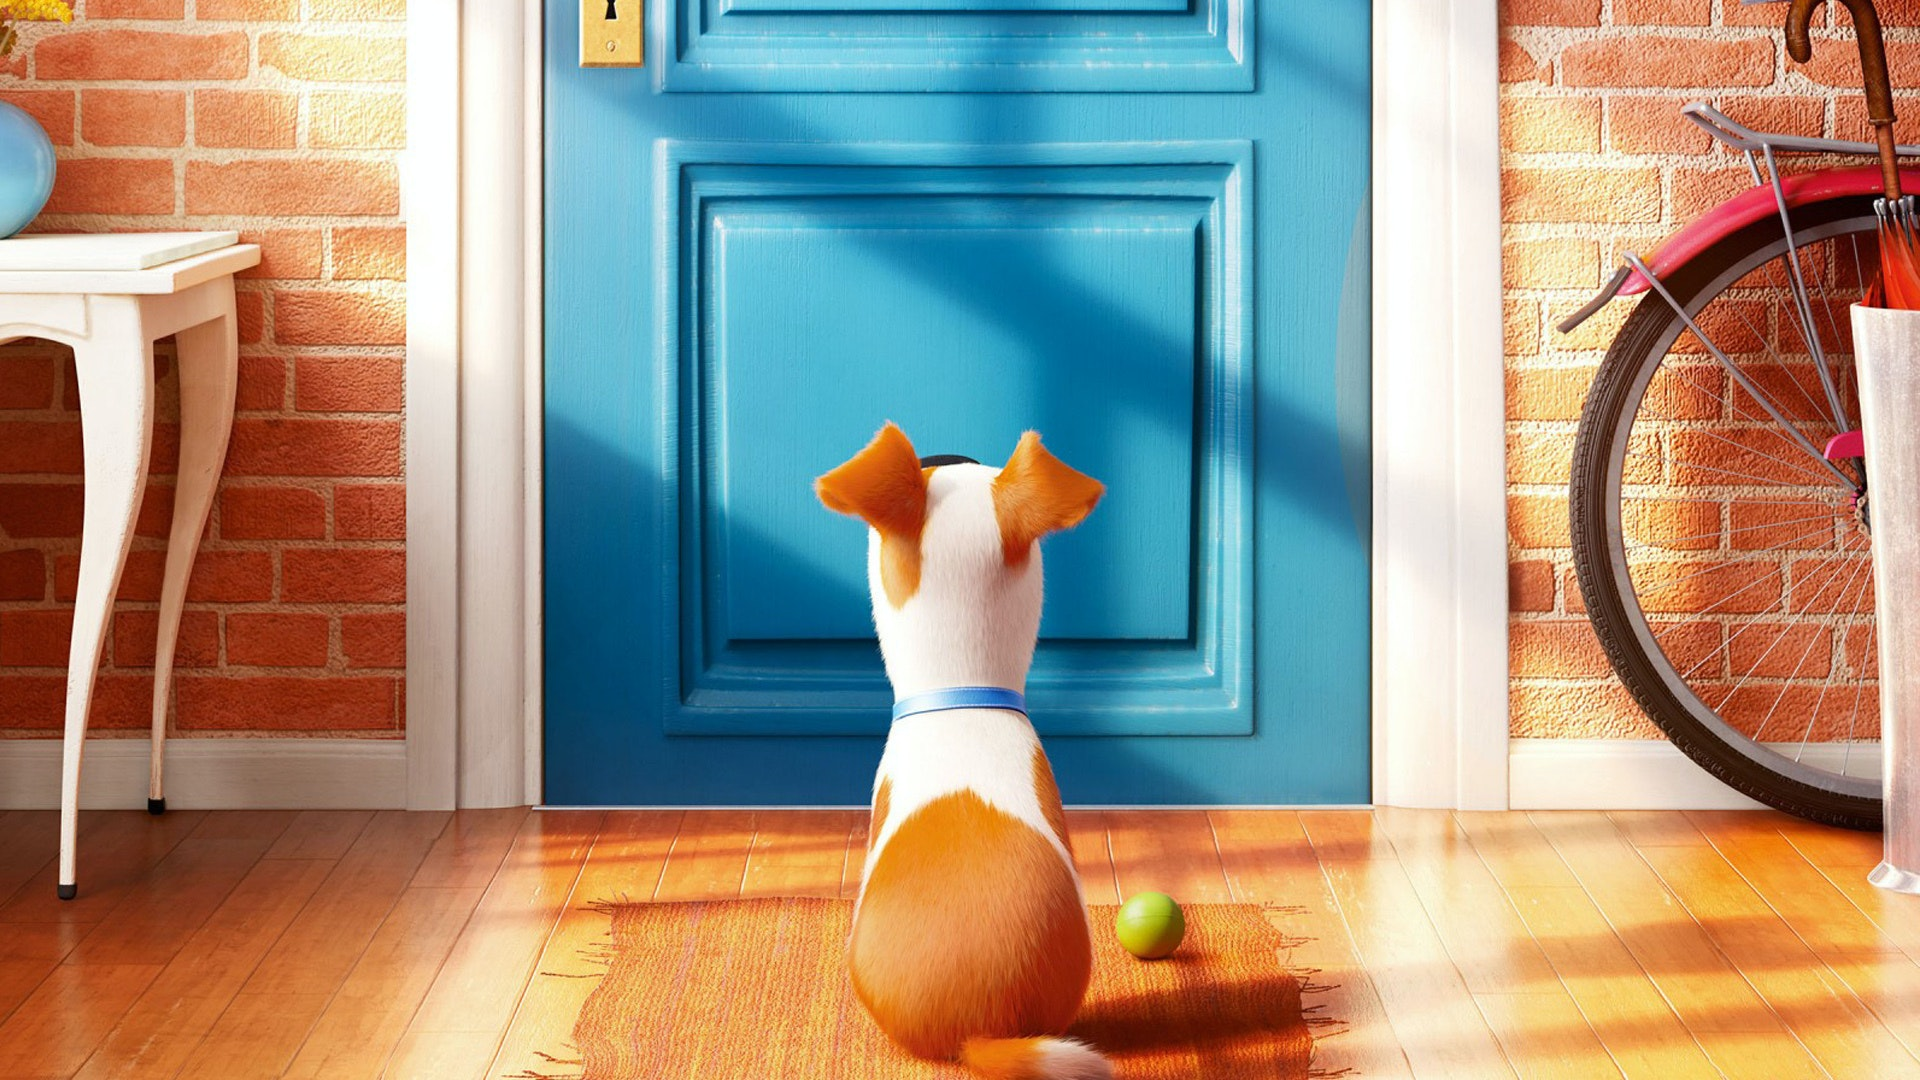 The Secret Life of Pets (2016) Soundtrack